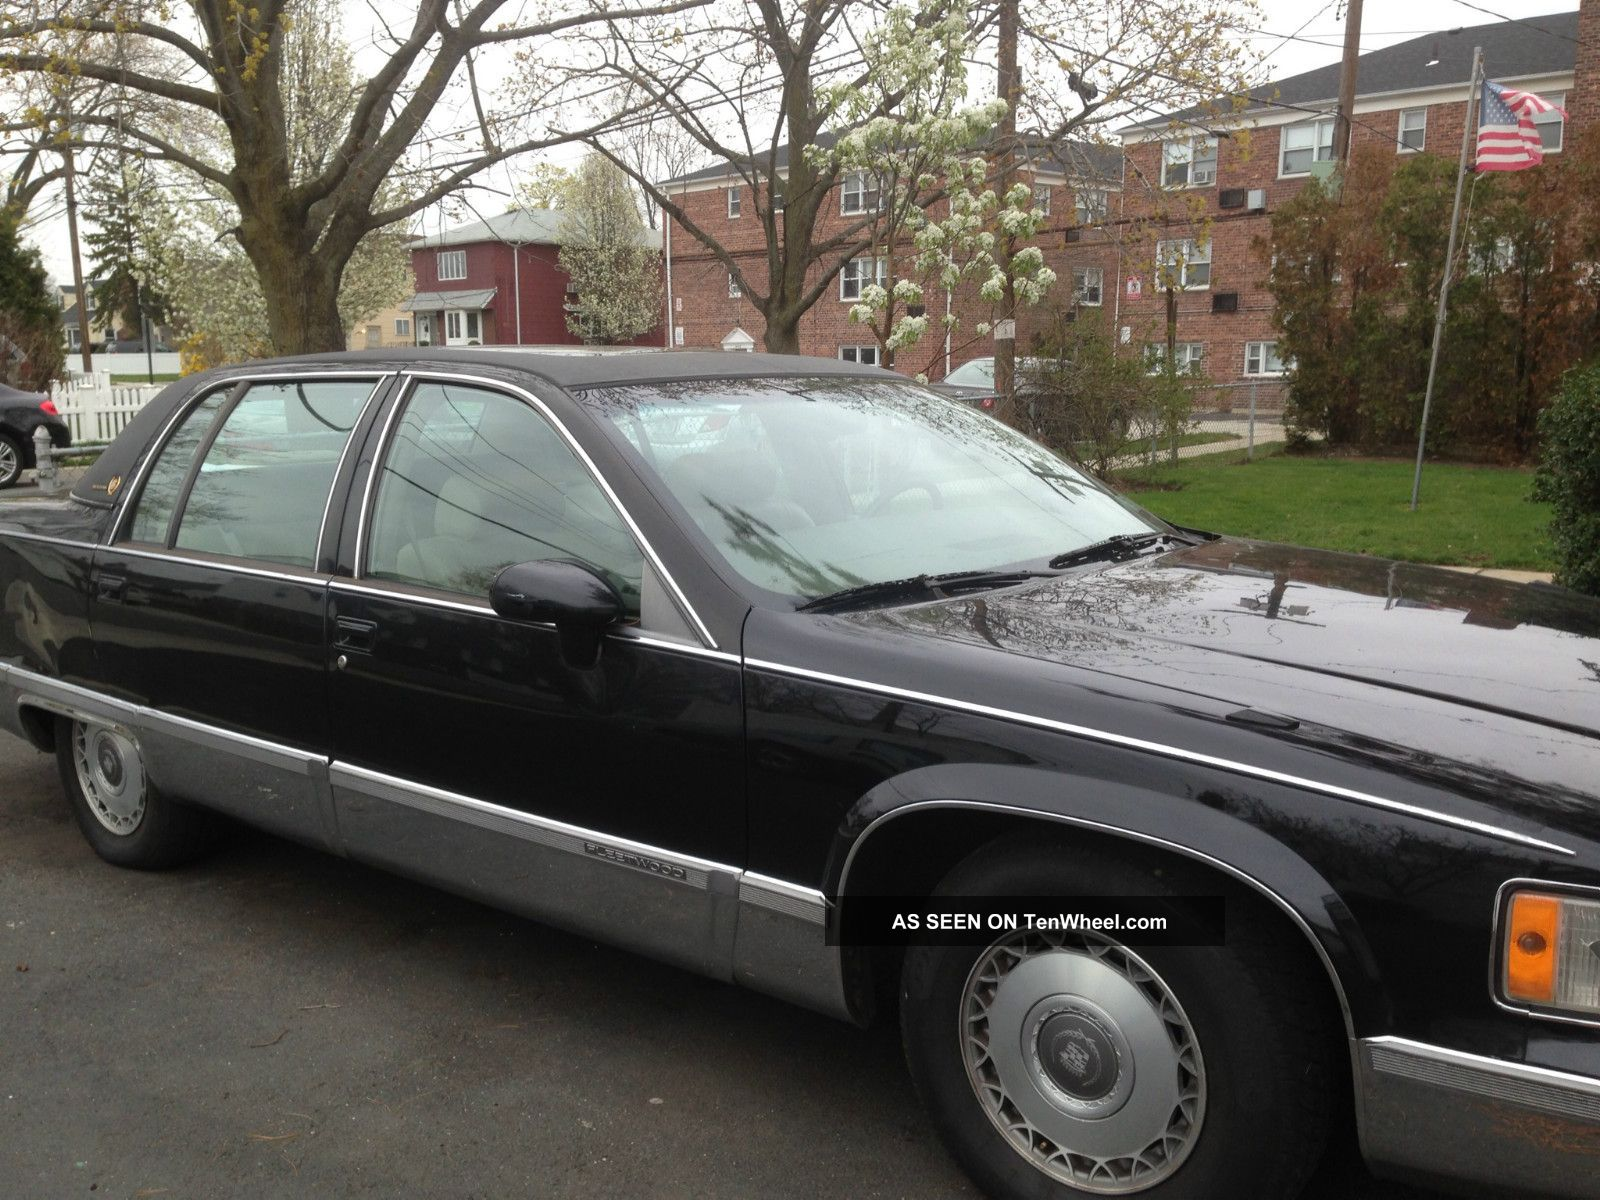 1993 cadillac fleetwood brougham sedan 4 door 5 7l fleetwood photo. Cars Review. Best American Auto & Cars Review